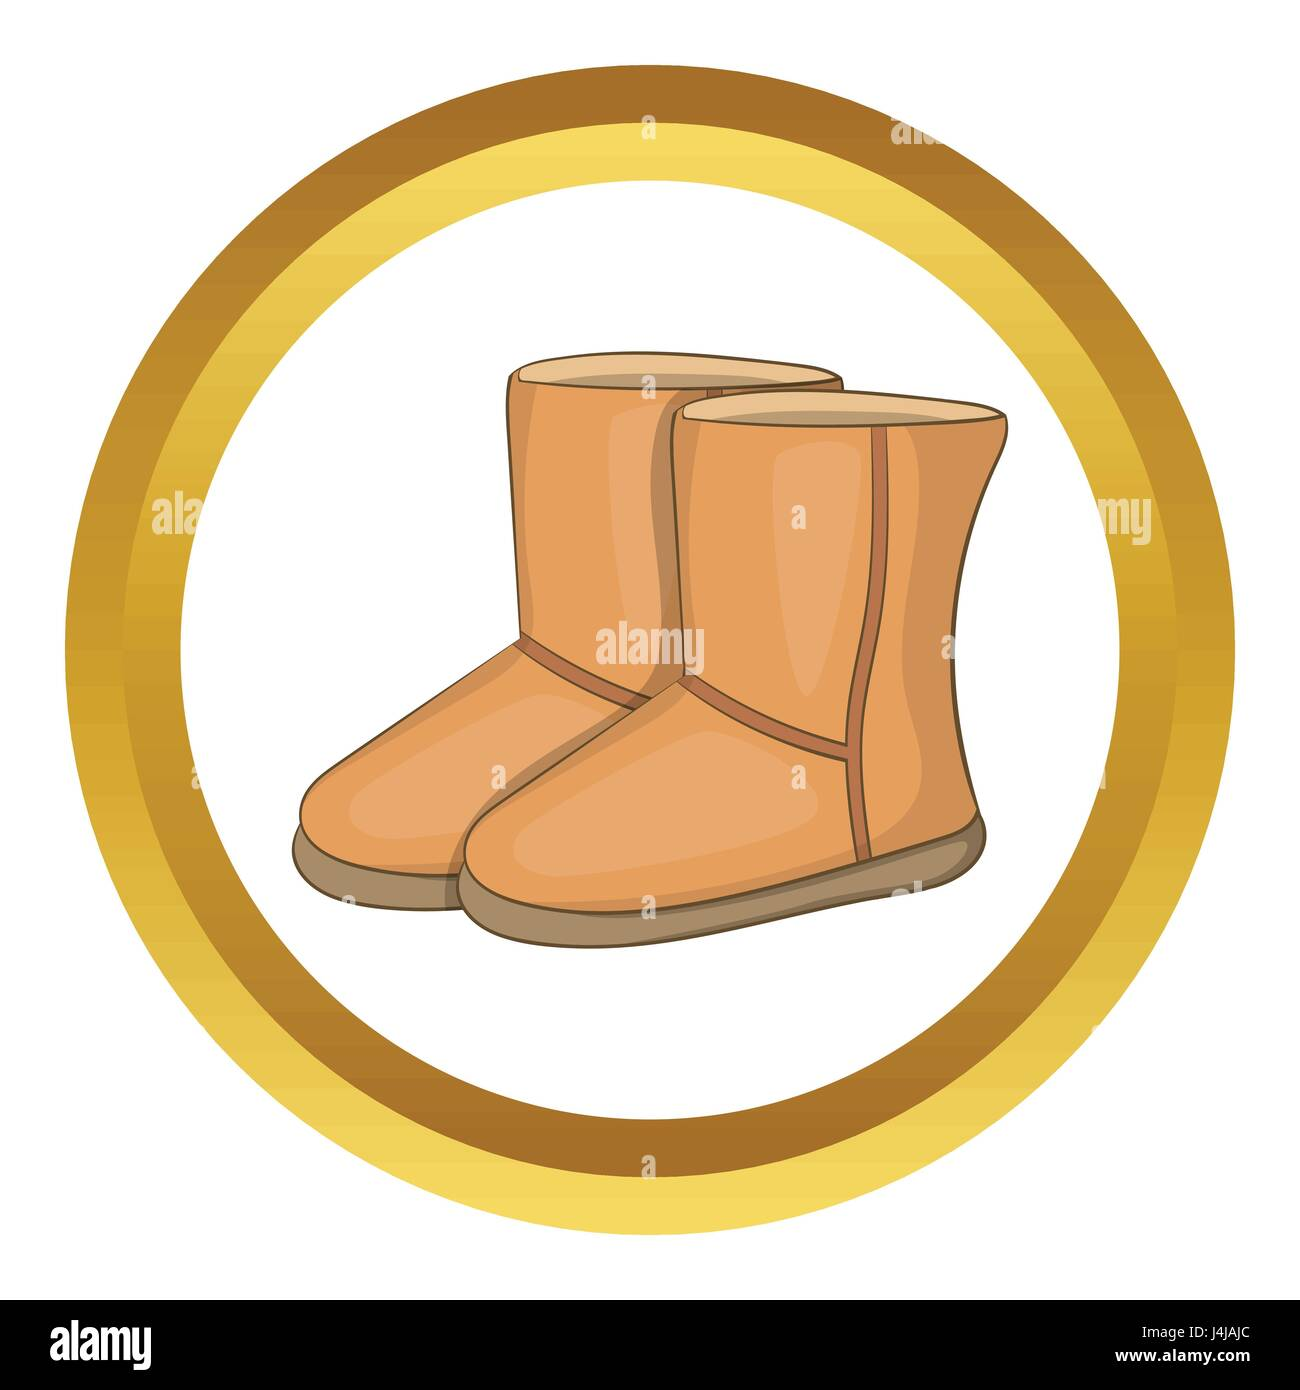 c0148b6c21 Winter ugg boots vector icon Stock Vector Art & Illustration, Vector ...